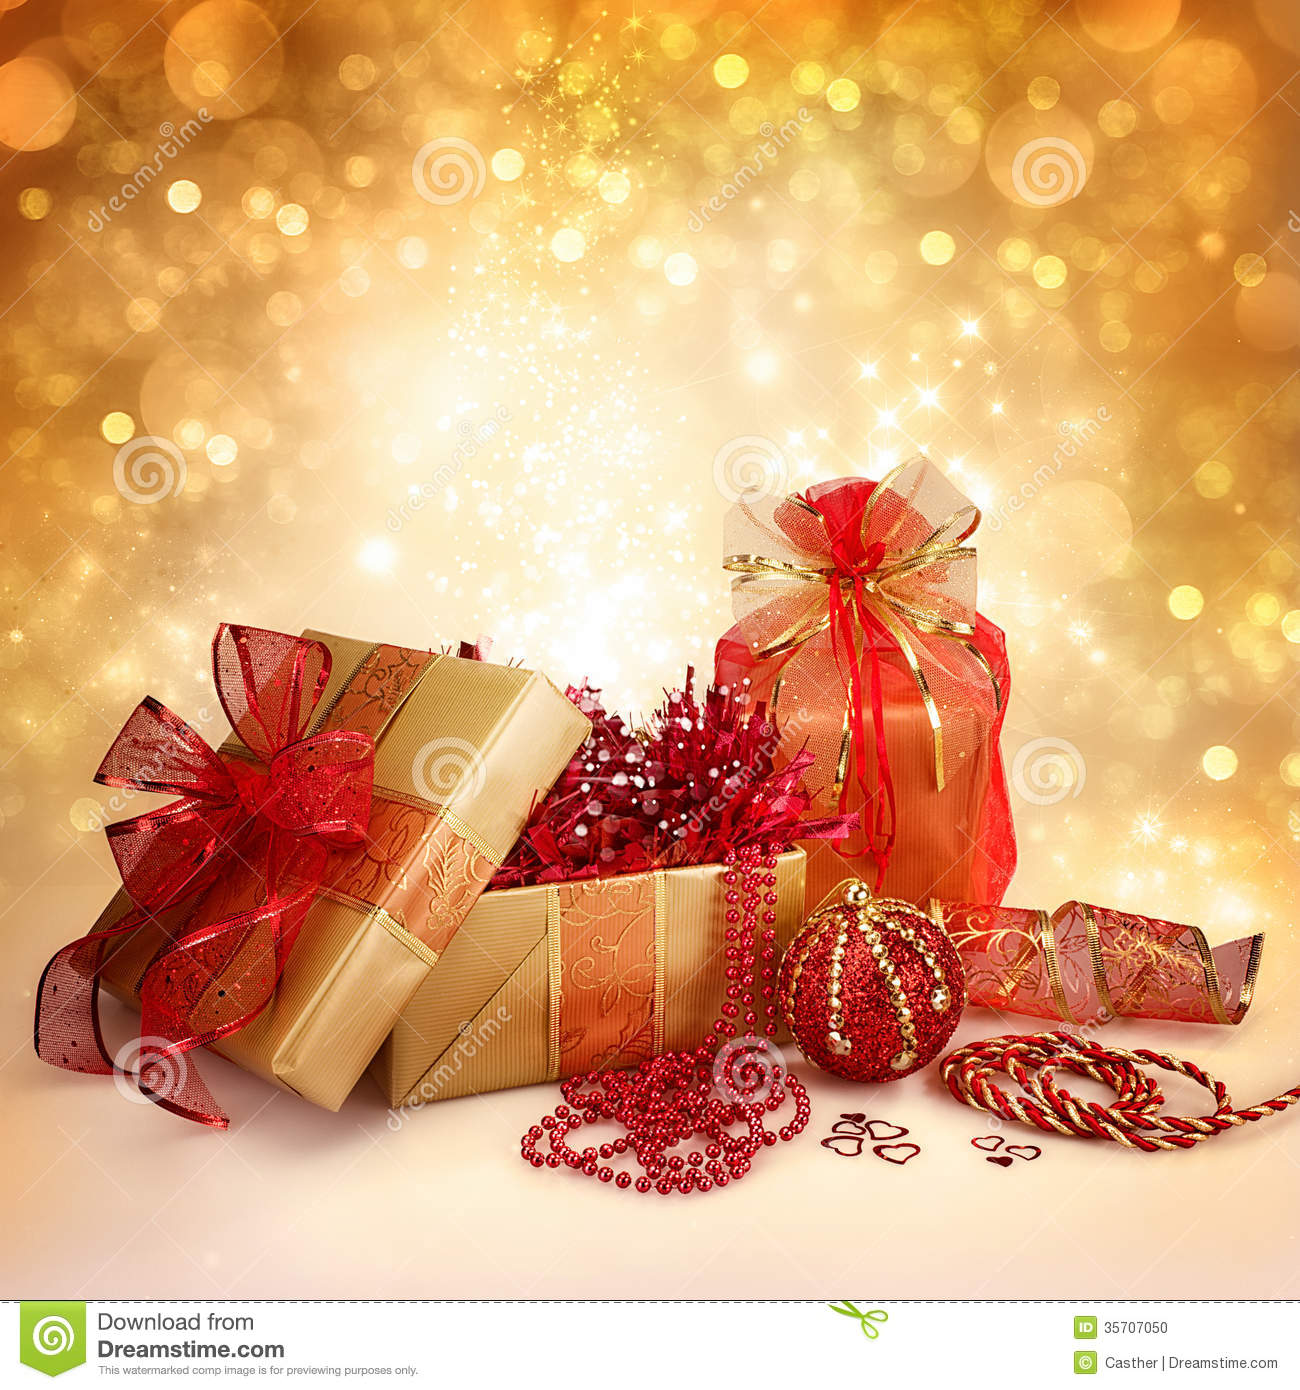 Christmas gifts and decorations in gold red stock